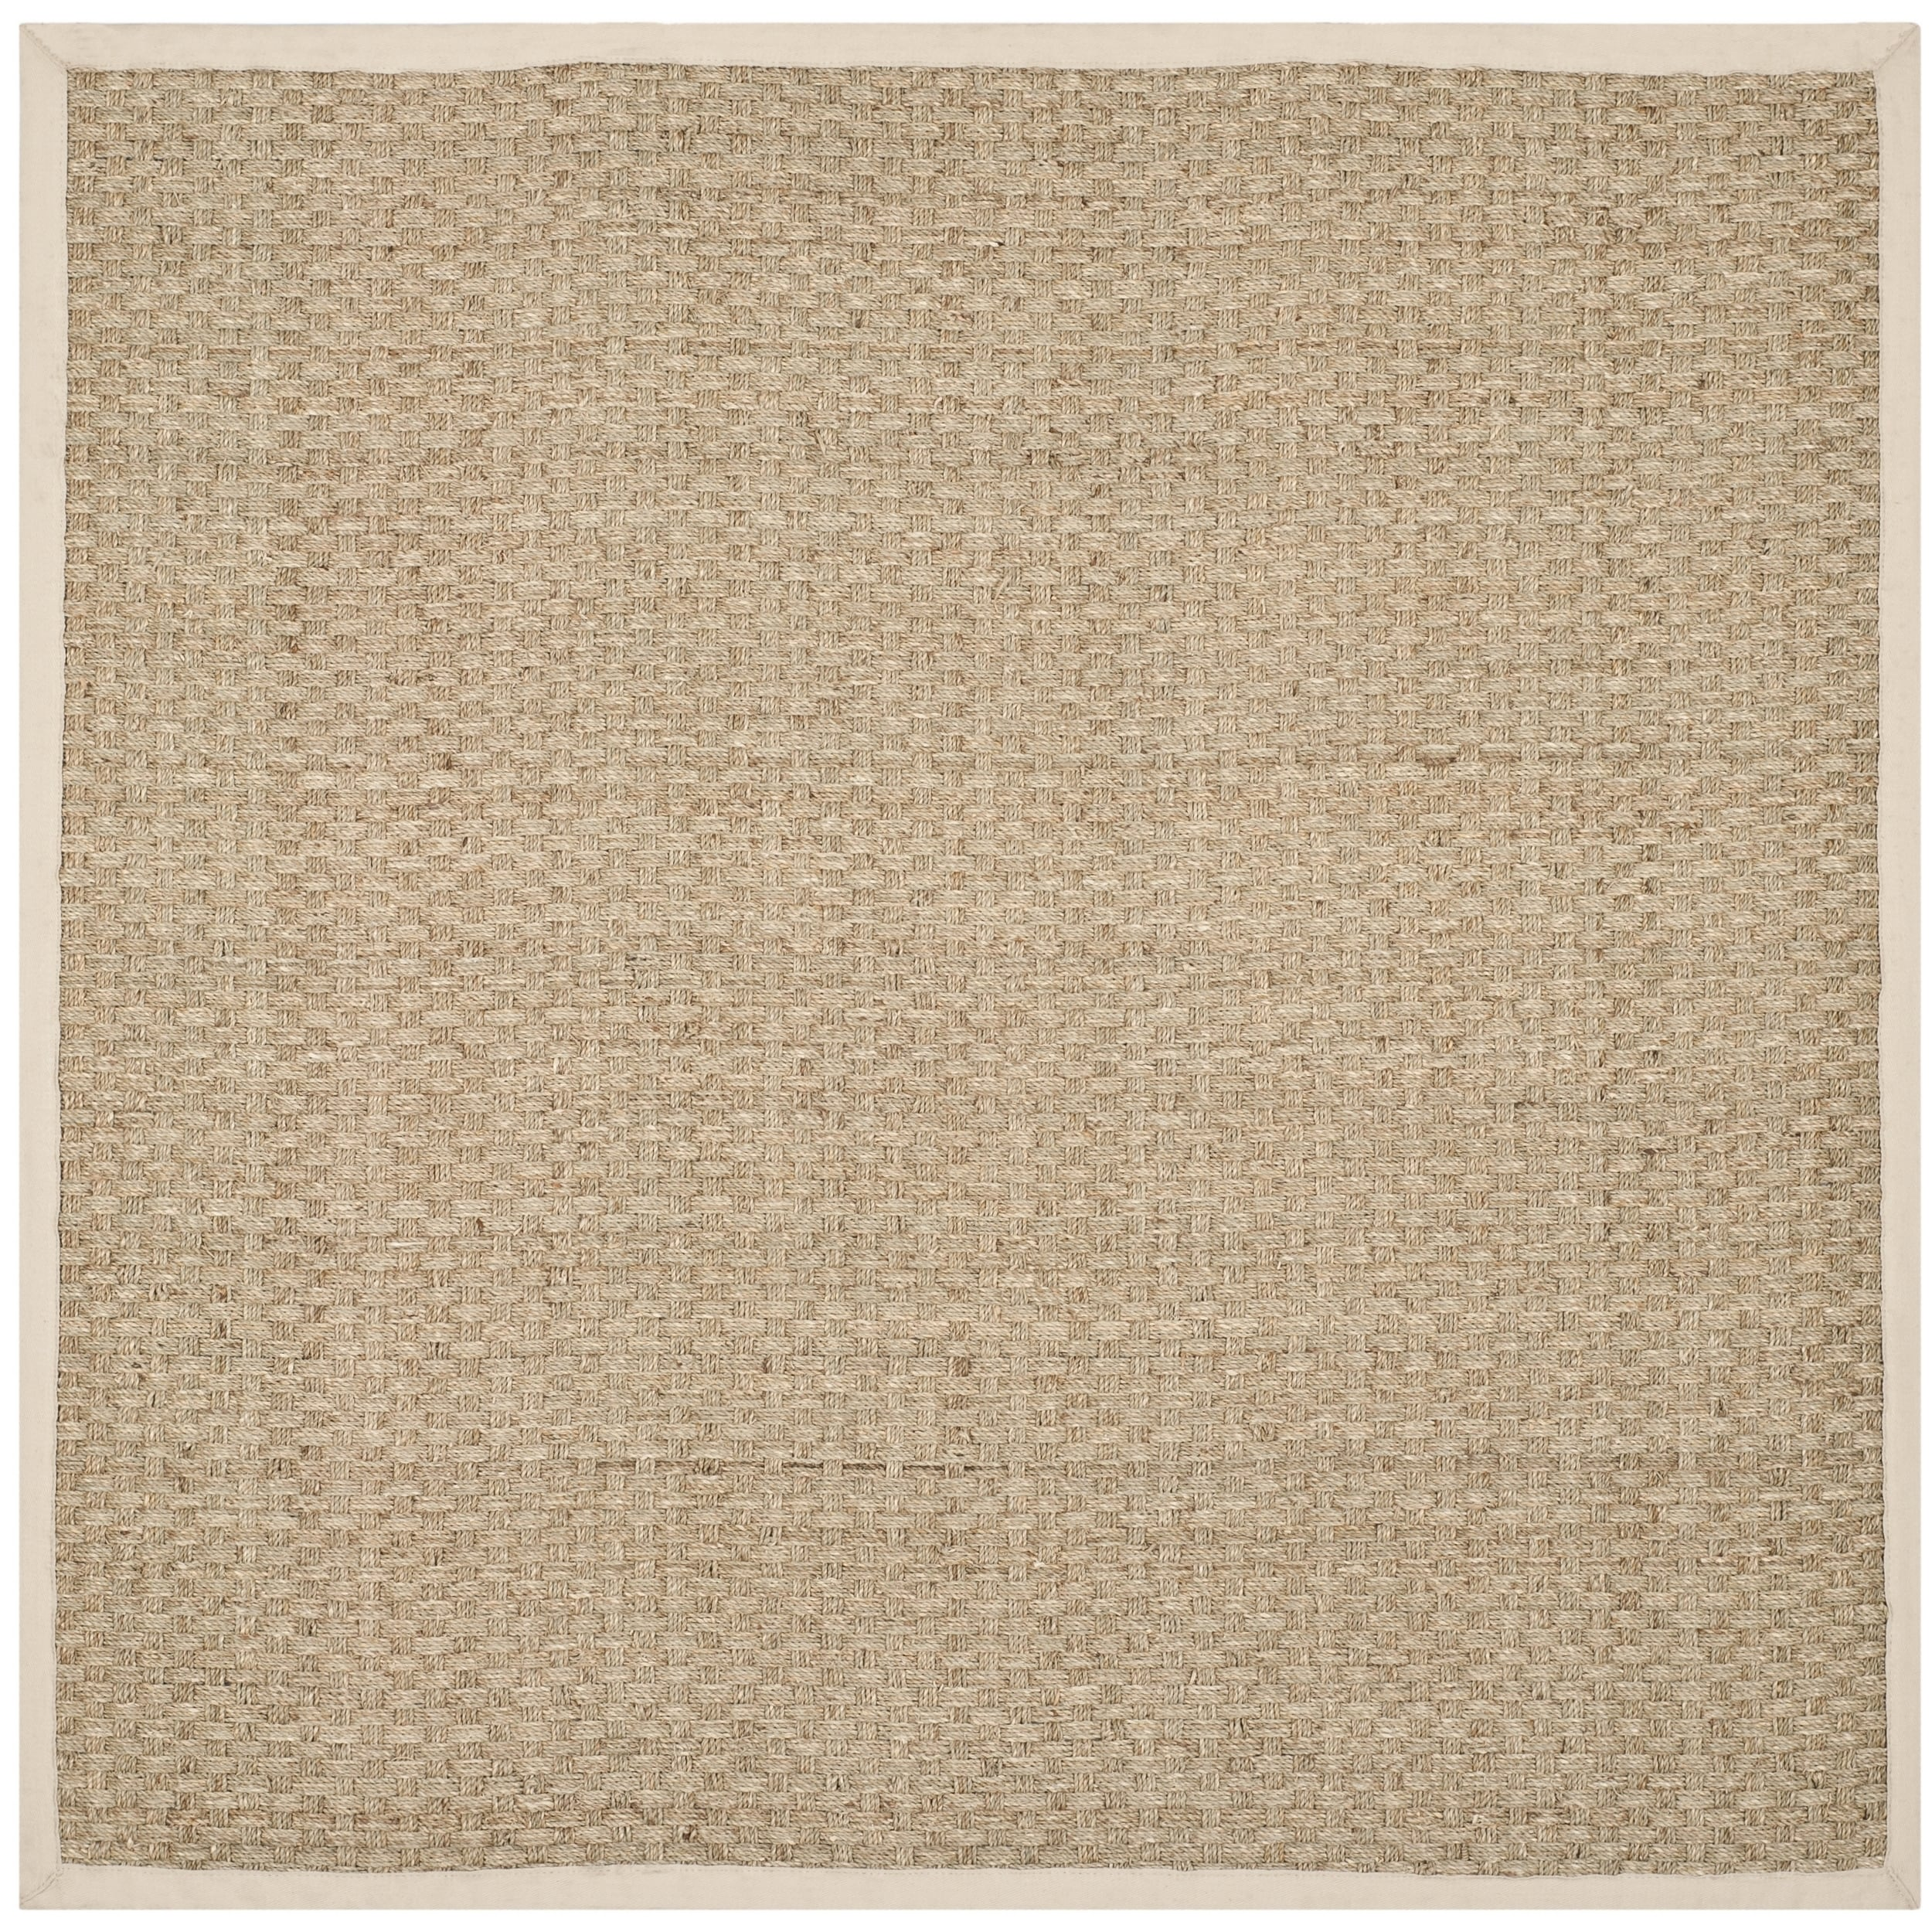 rug basket l illum jsp seagrass catalog weave v product rugs wid